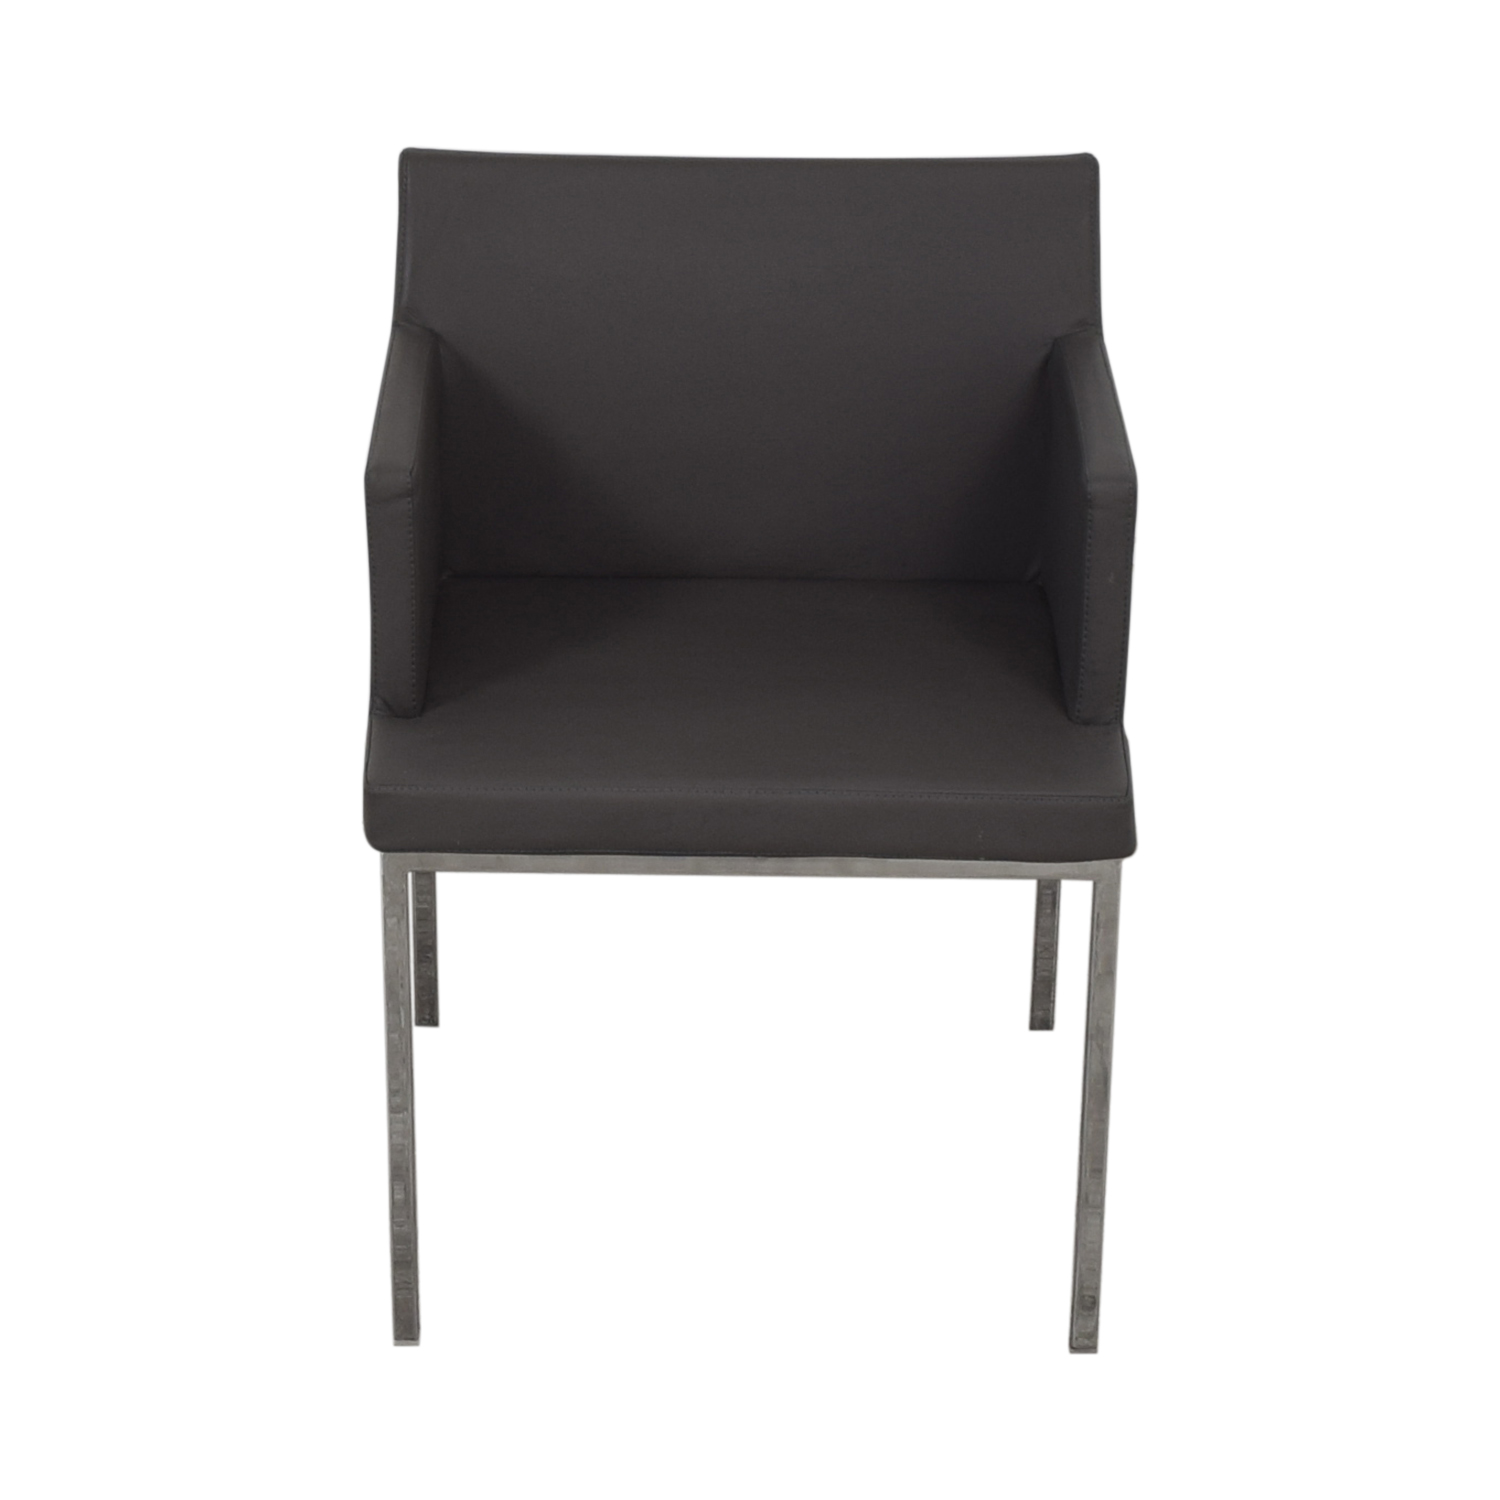 Lazzoni Lazonni Leather Chrome Chair second hand